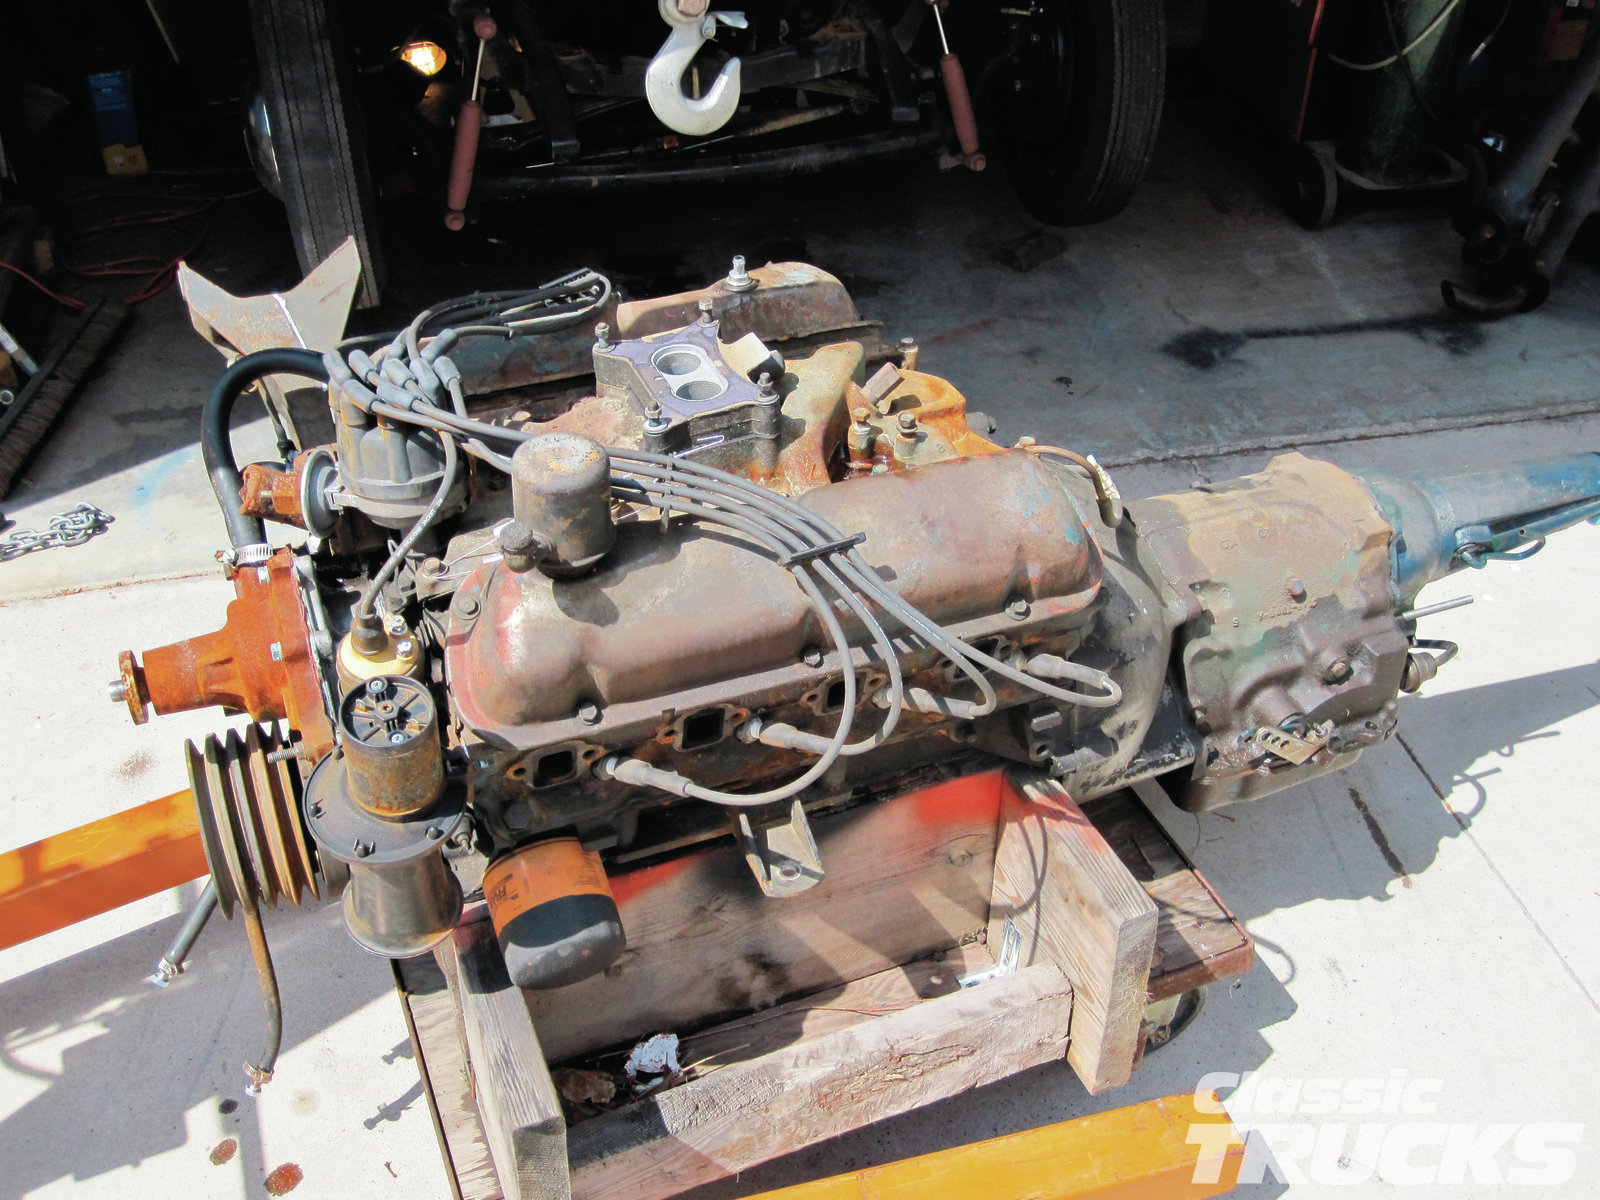 [07] After pulling the headers, radiator, hoses, very few wiring connections, and four engine and transmission mounting bolts, the engine was lifted up and out.